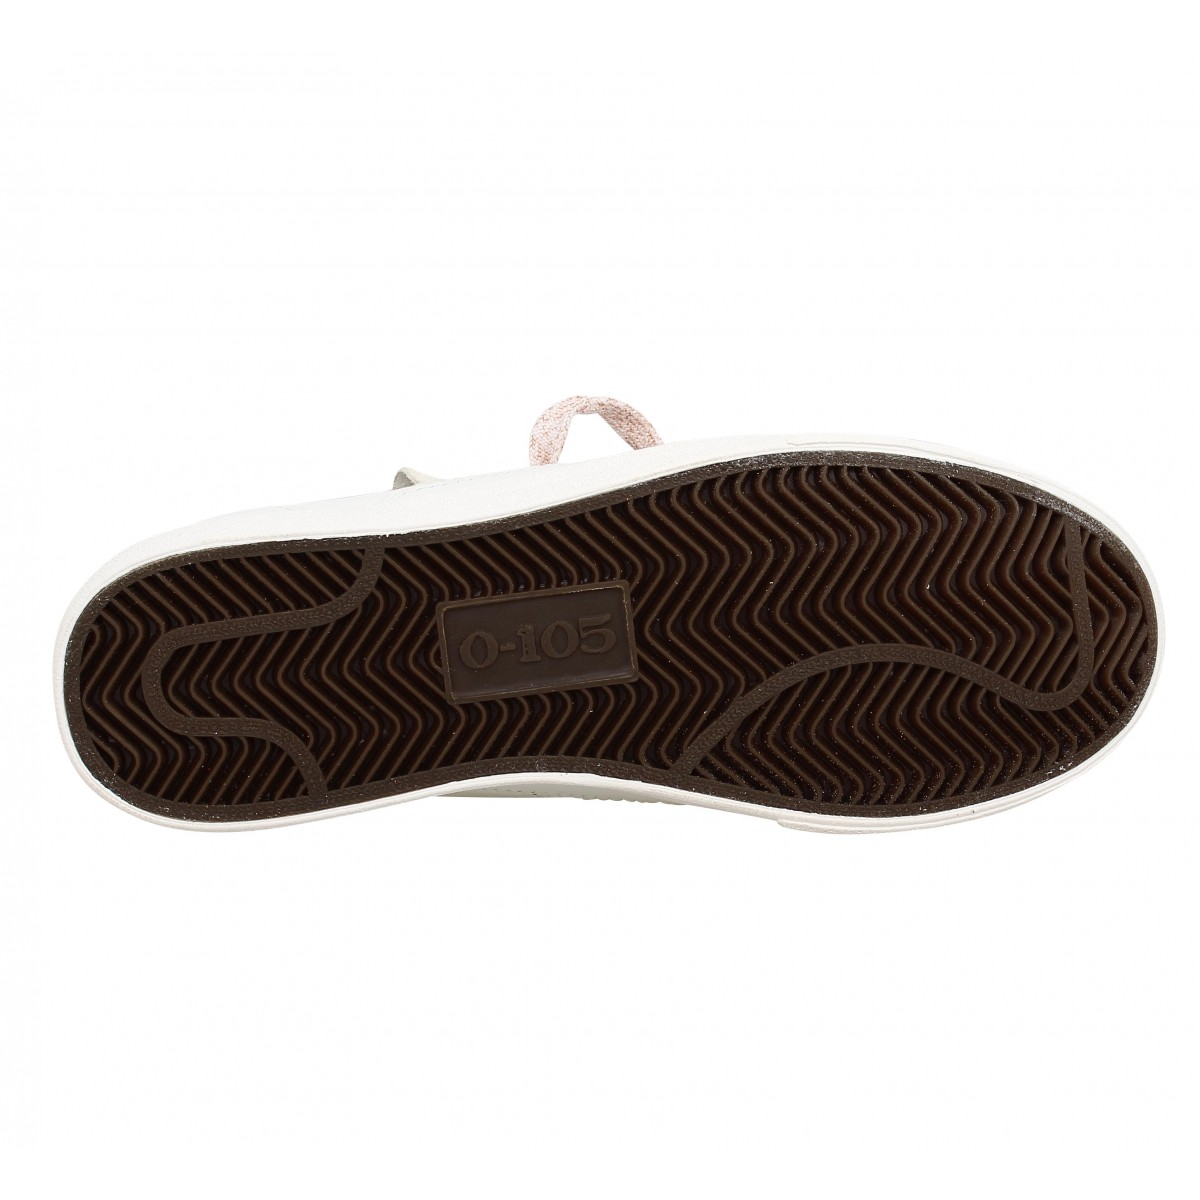 Blanche Valerie Timberland Valerie Chaussure Homme Homme